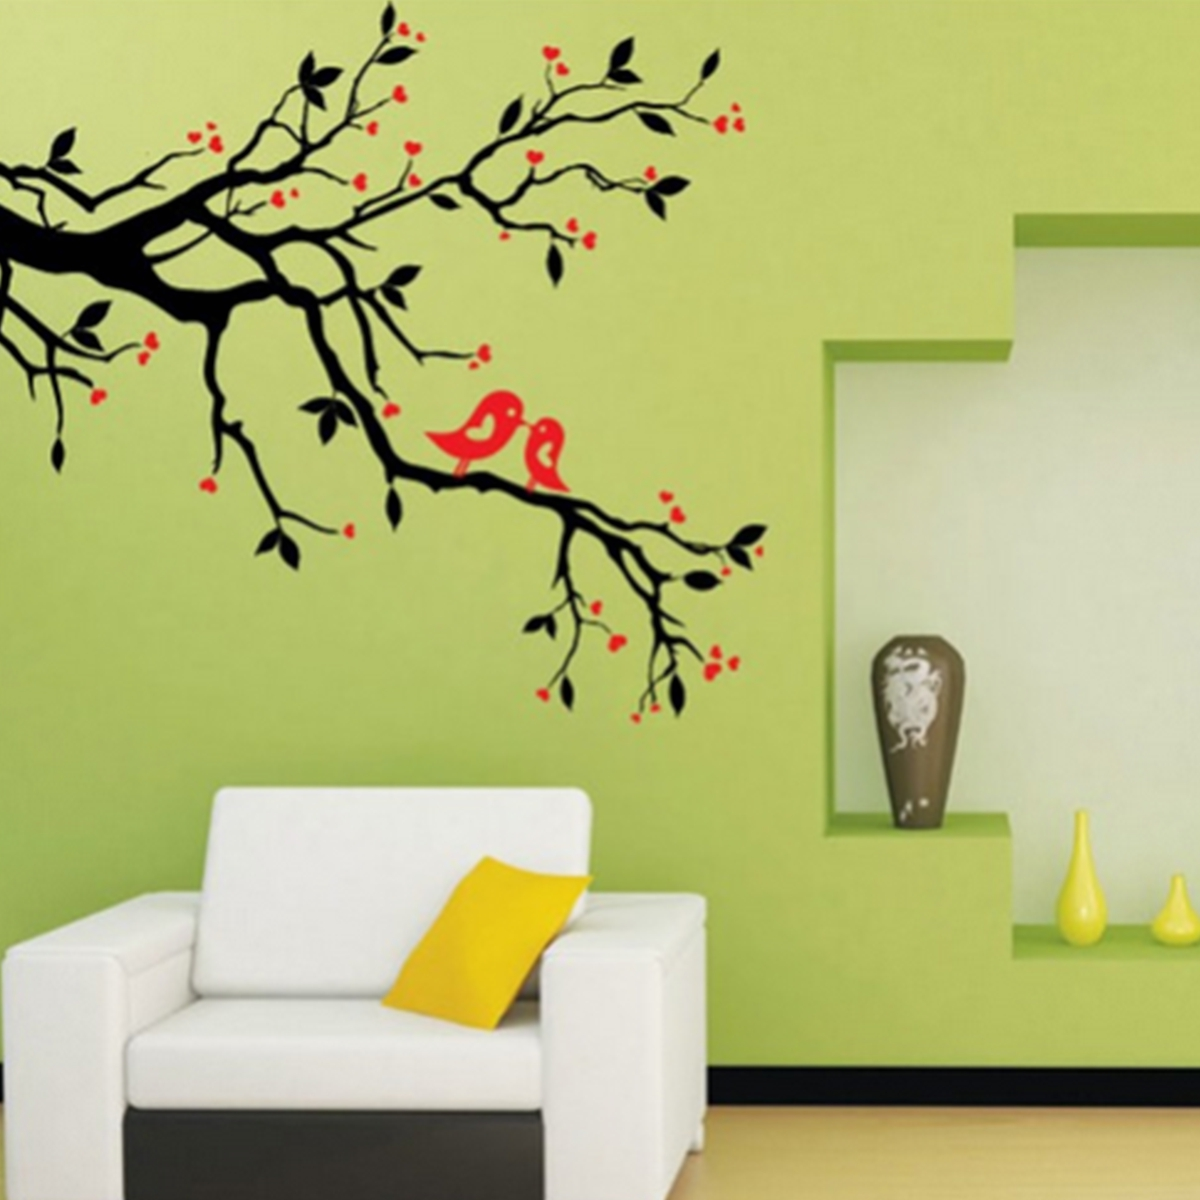 "19.68""x27.55"" Love Heart homefurnitureampampdiy Tree Bird Removable Vinyl Wall Decal Sticker Art Mural Home Decor"